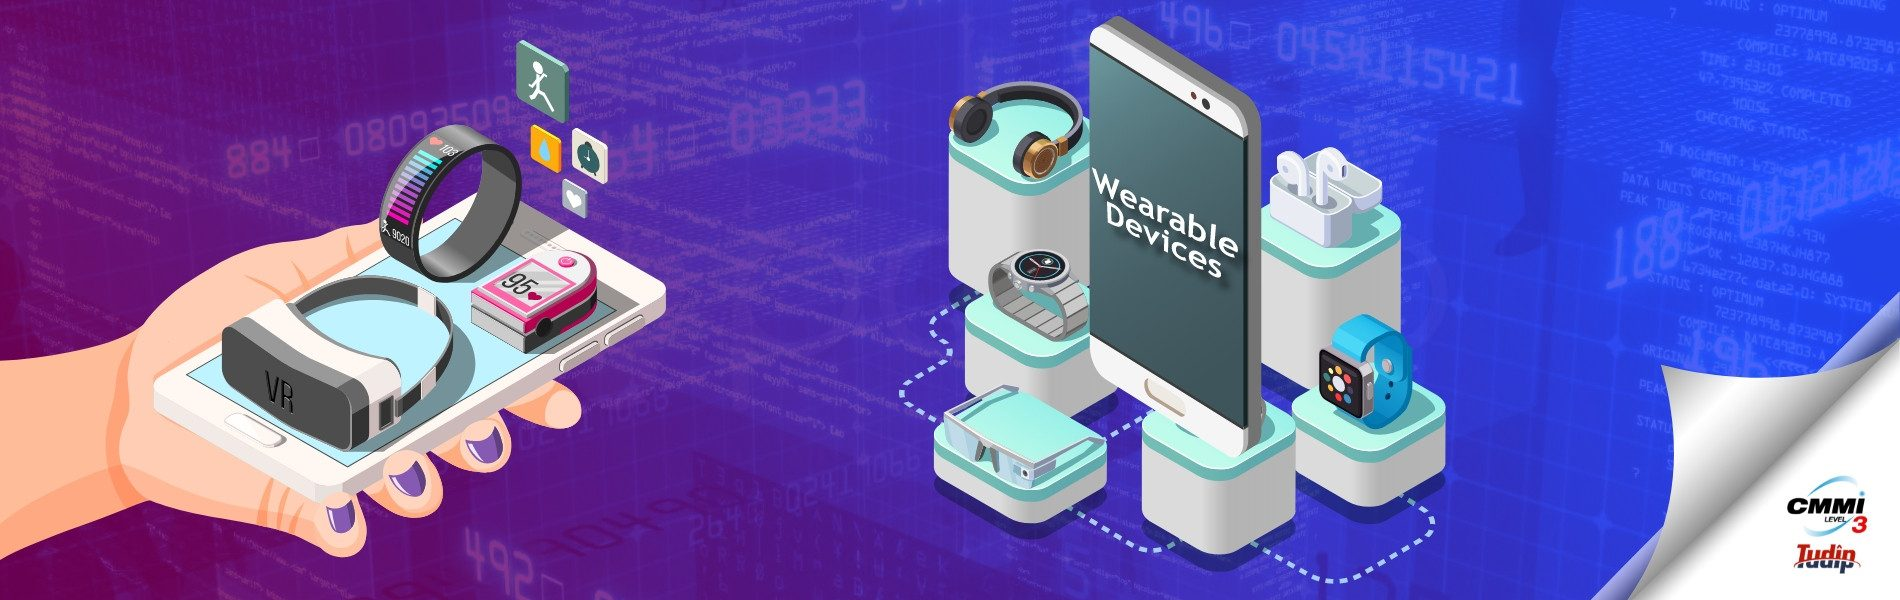 Risks and Benefits of Wearable Devices in the Workplace